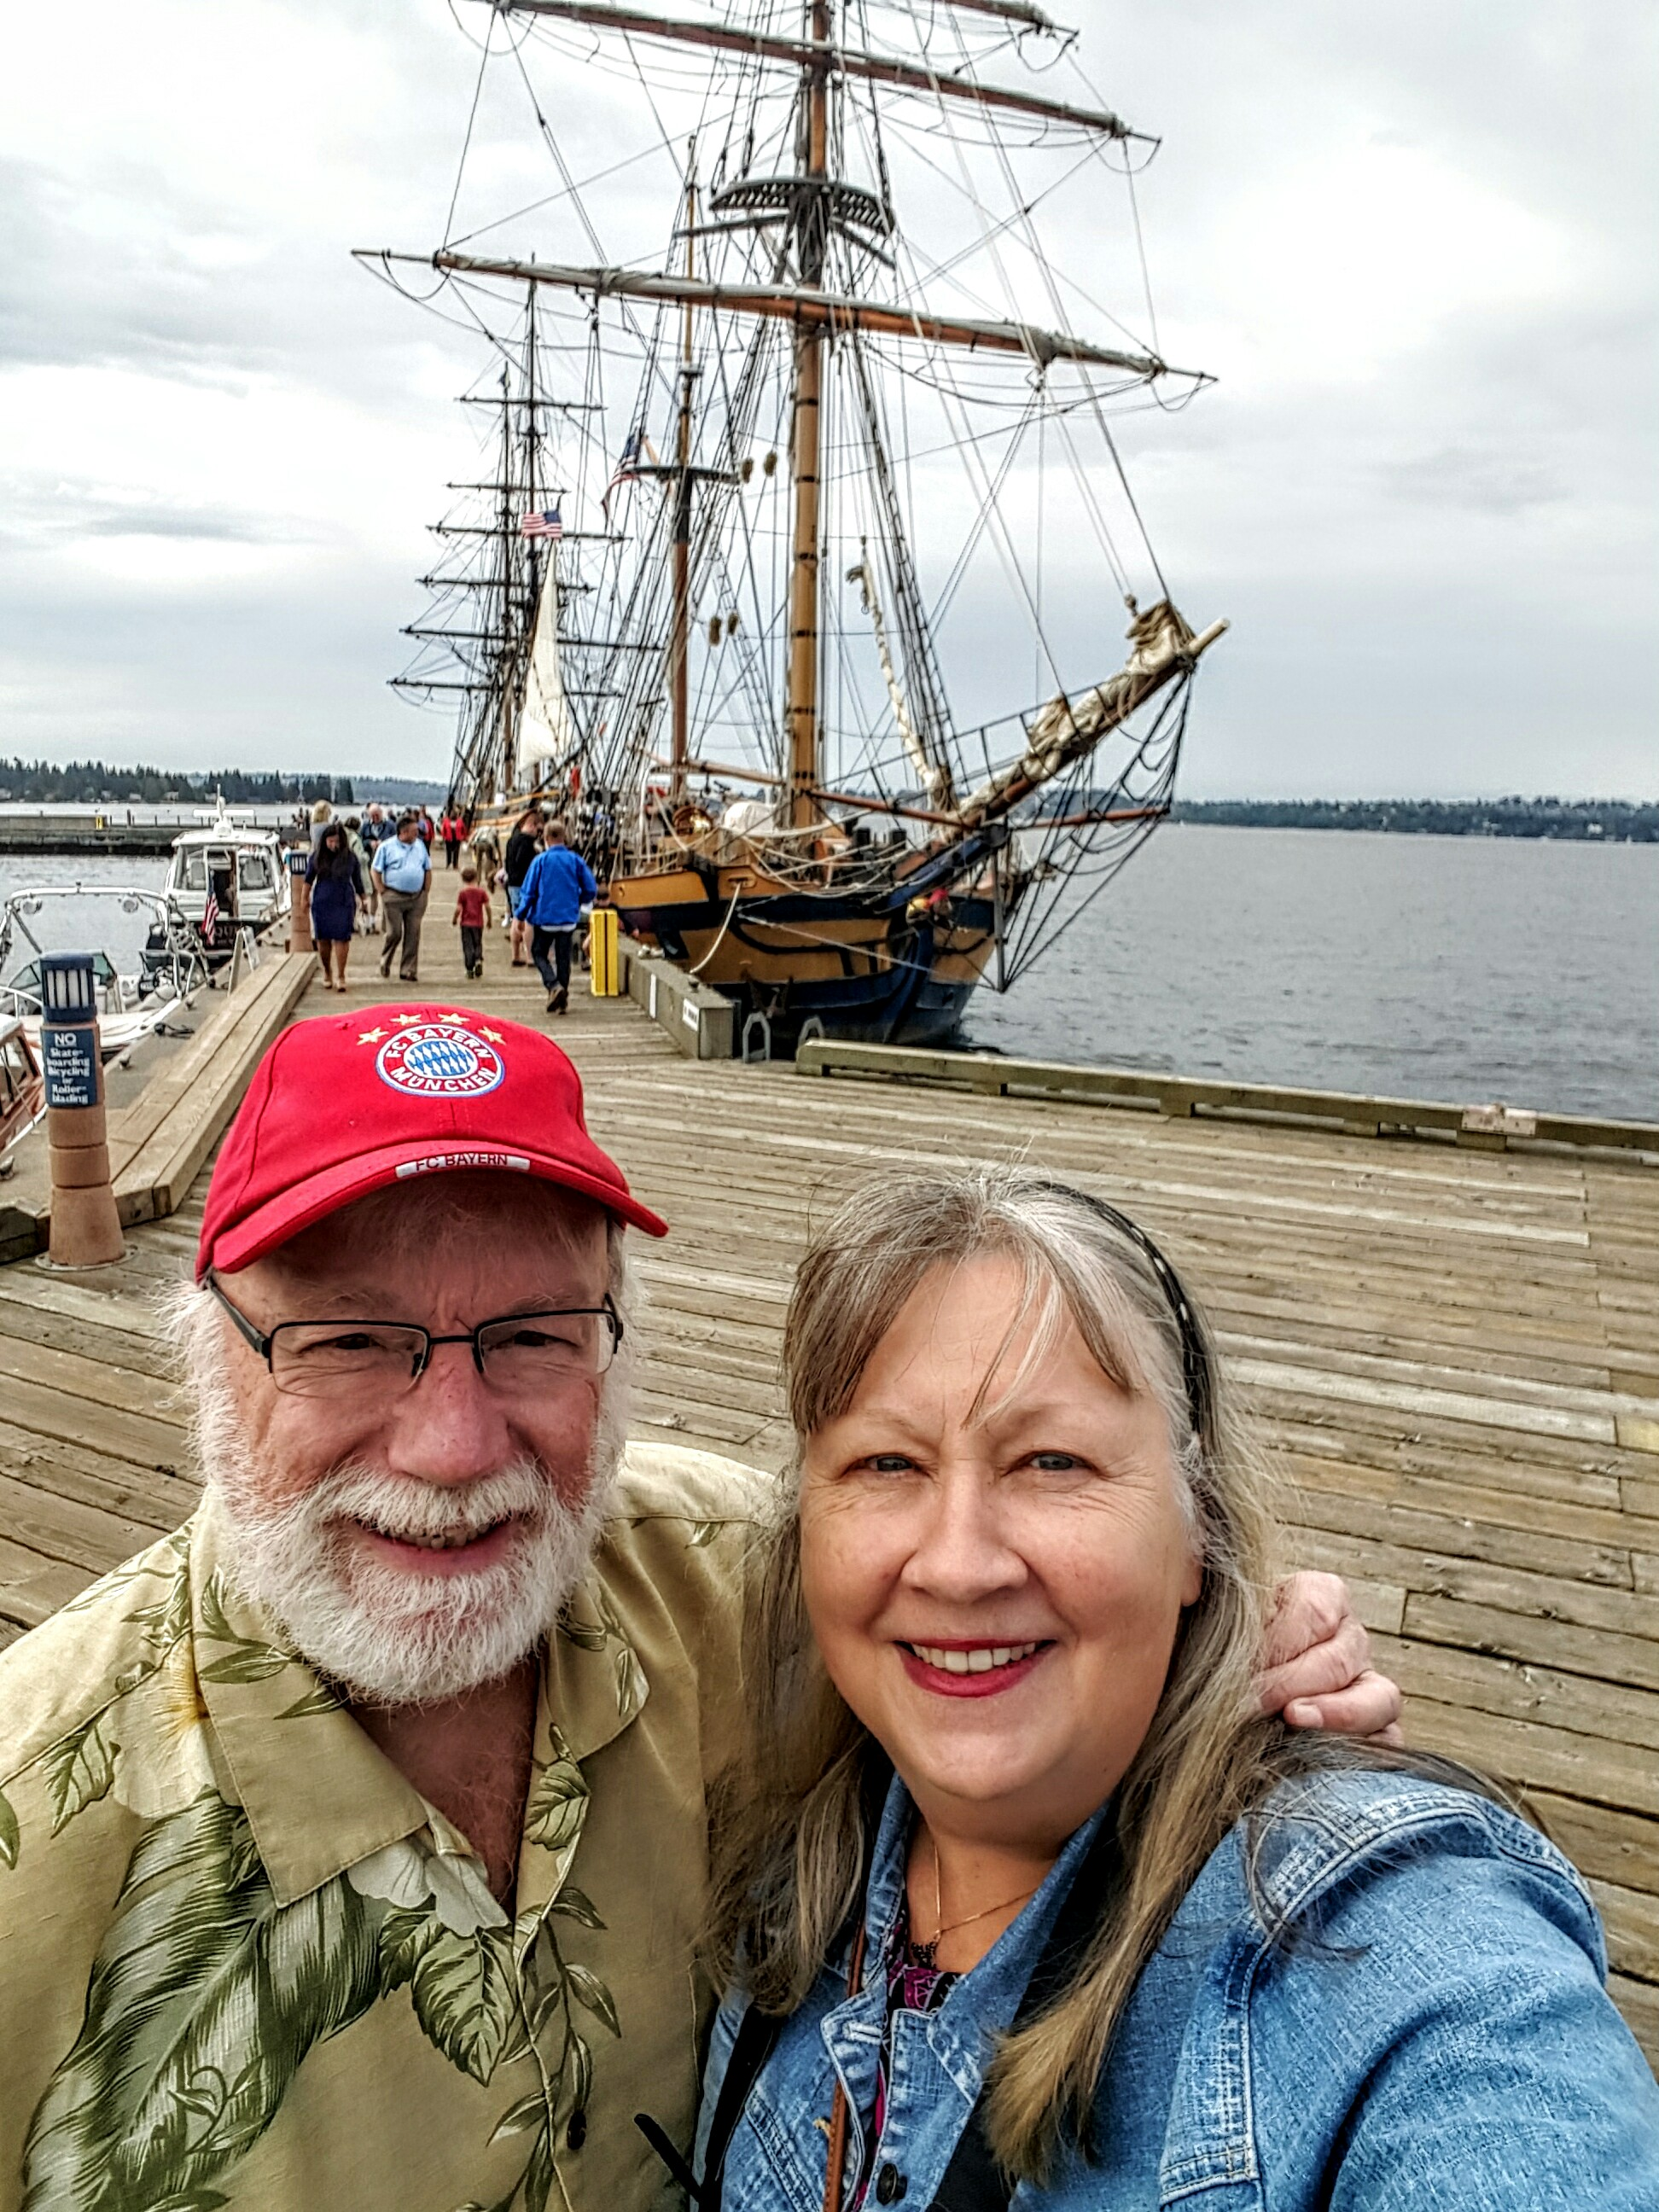 Reid Champagne and Carolyn Marquardt at the Tall Ships